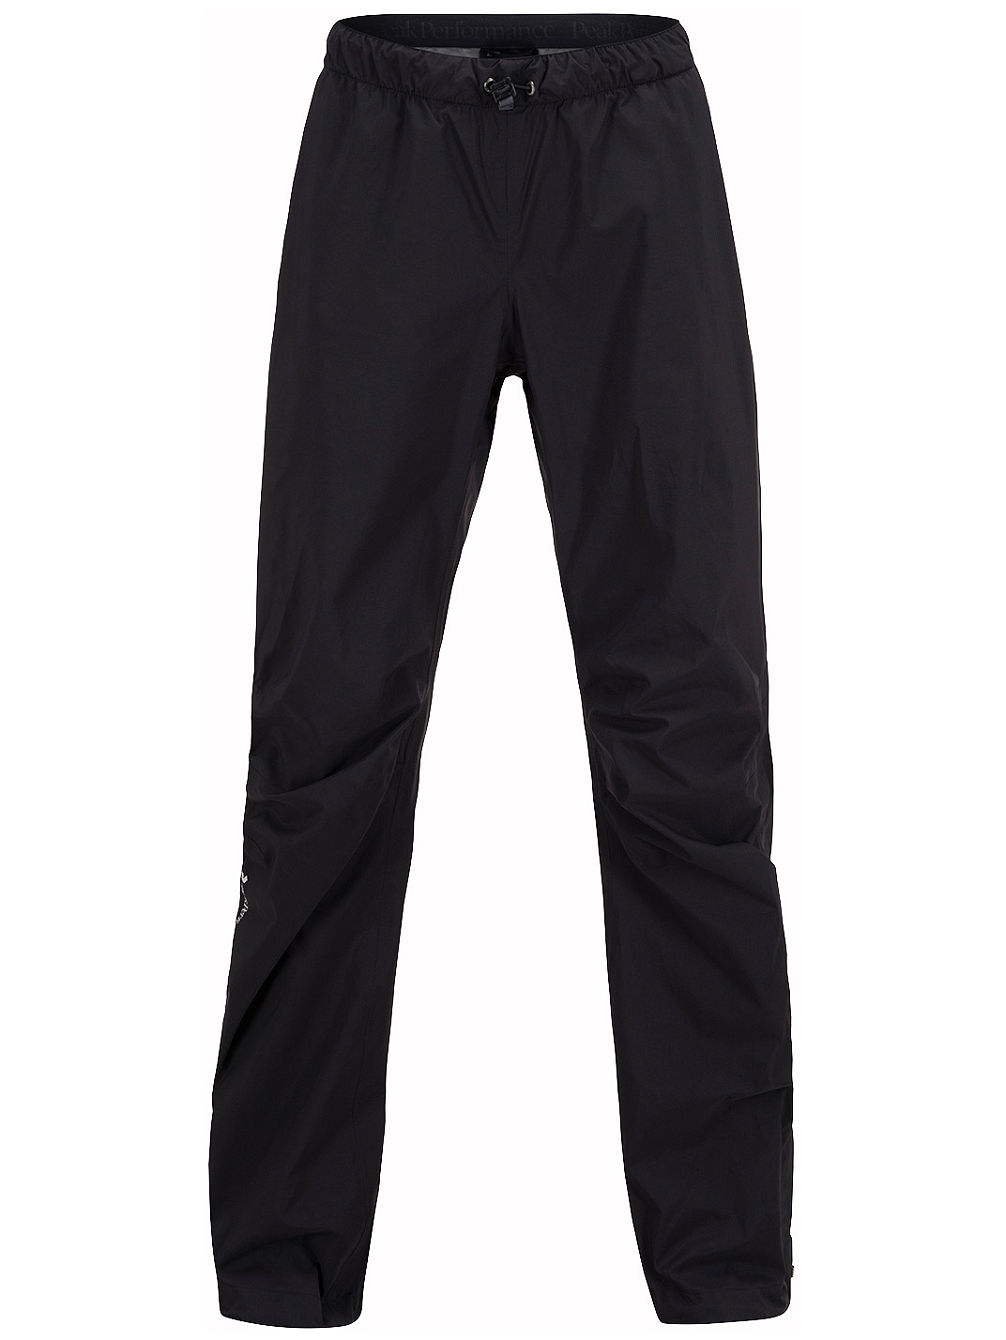 Swift Jogging Pants